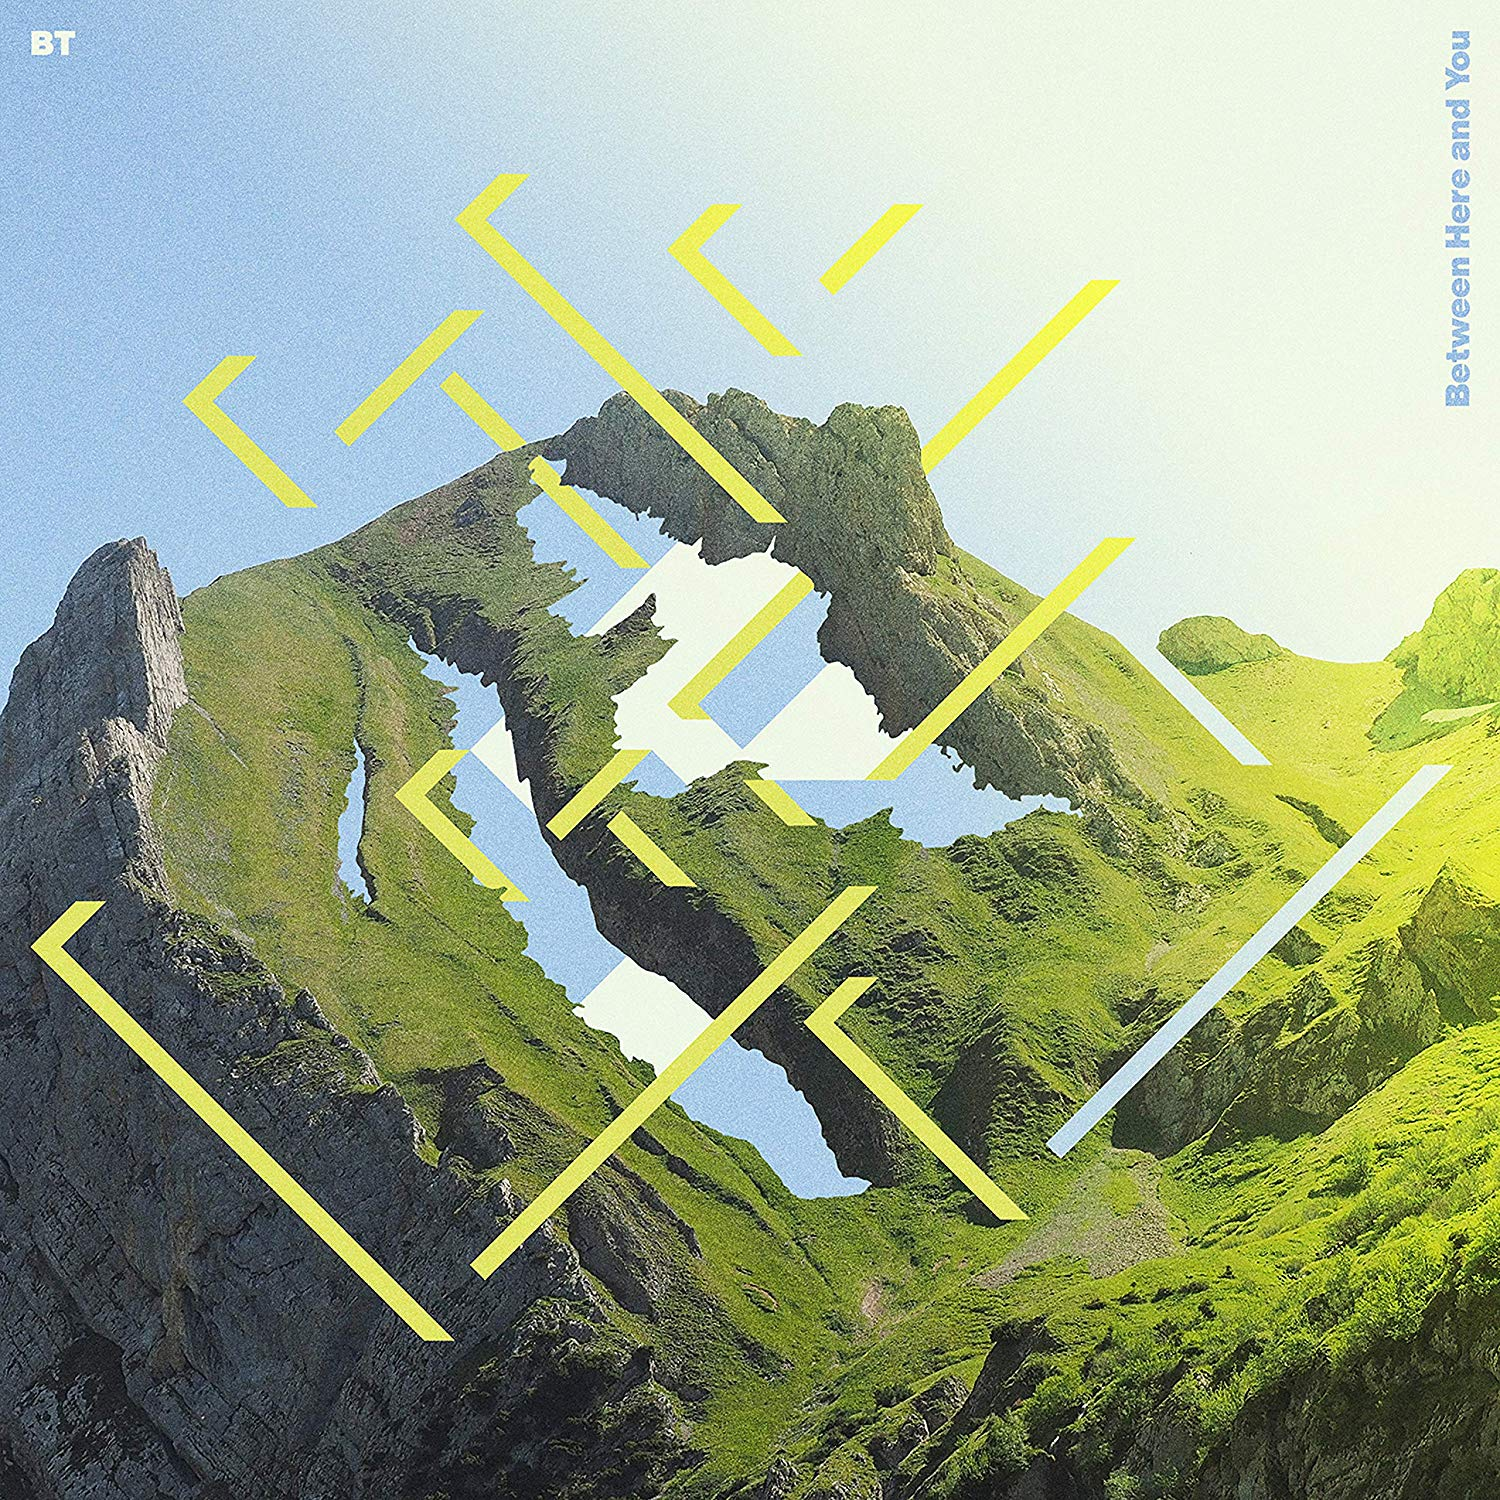 Artwork for 'Between Here and You' by BT